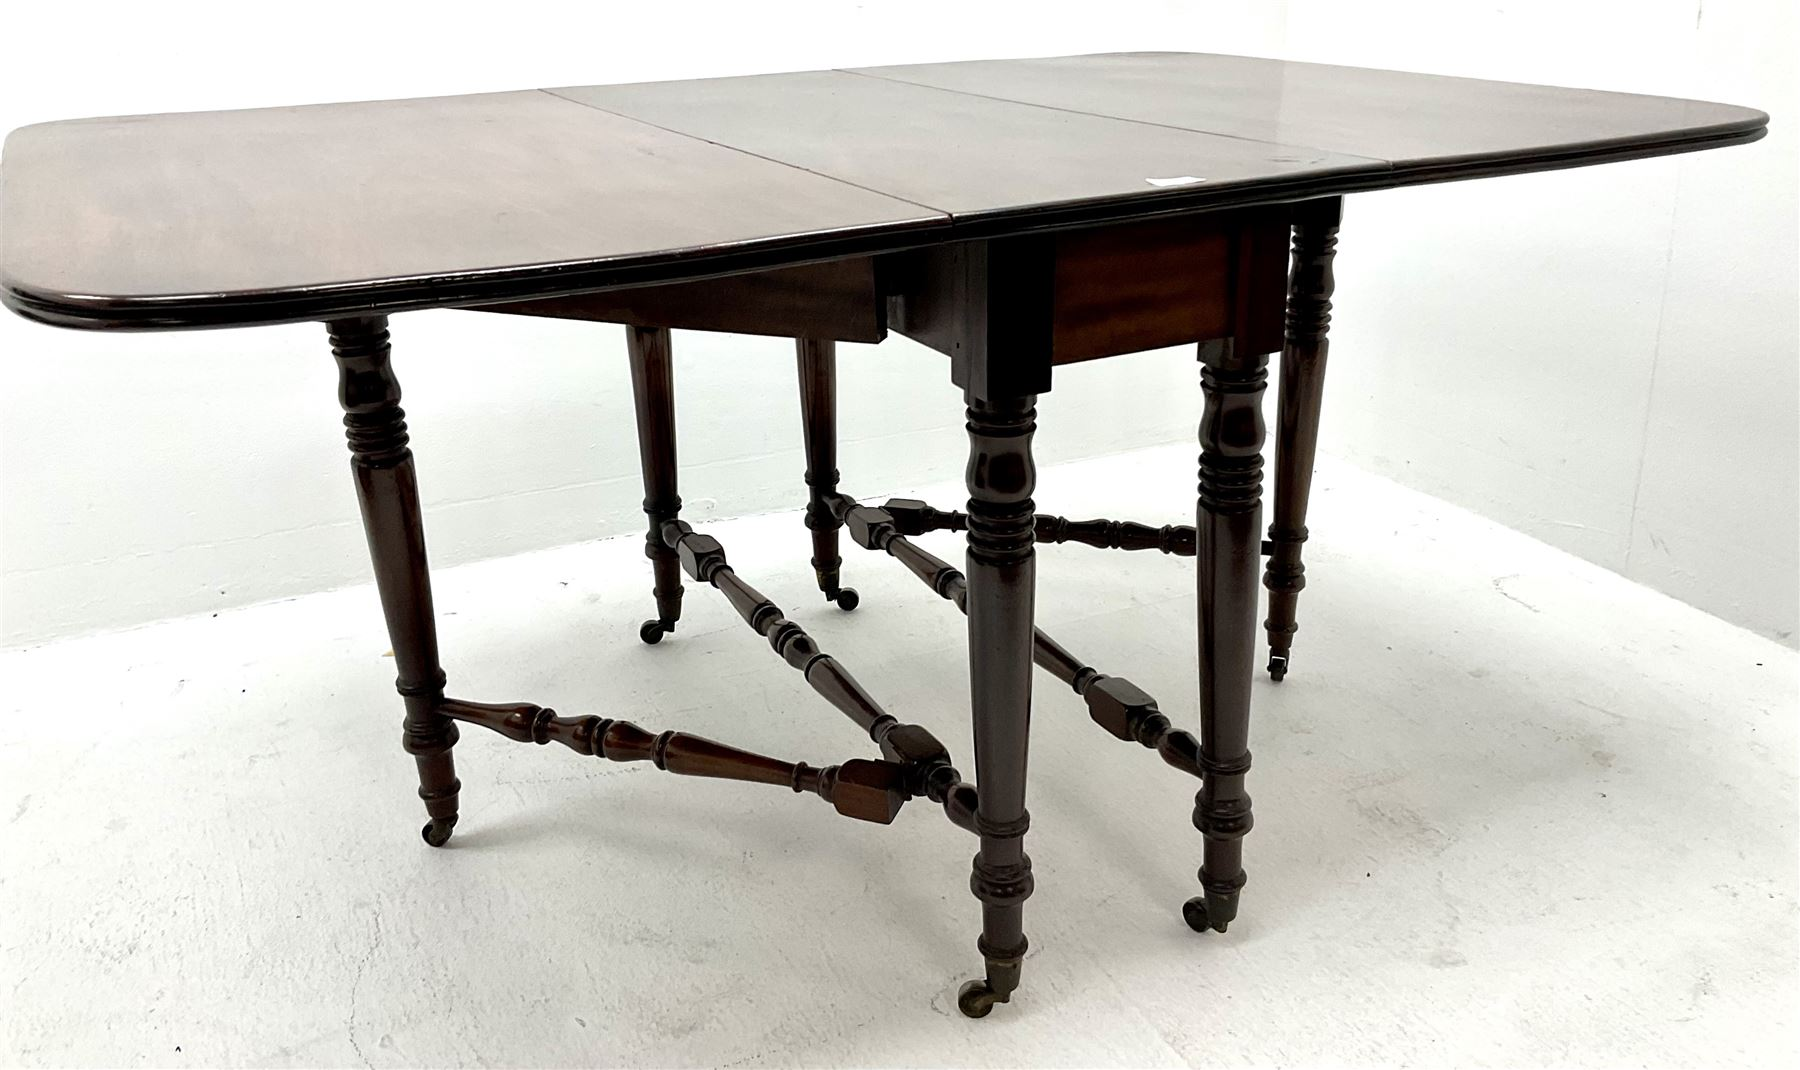 19th century mahogany dropleaf table turned tapering supports joined by stretches - Image 2 of 3